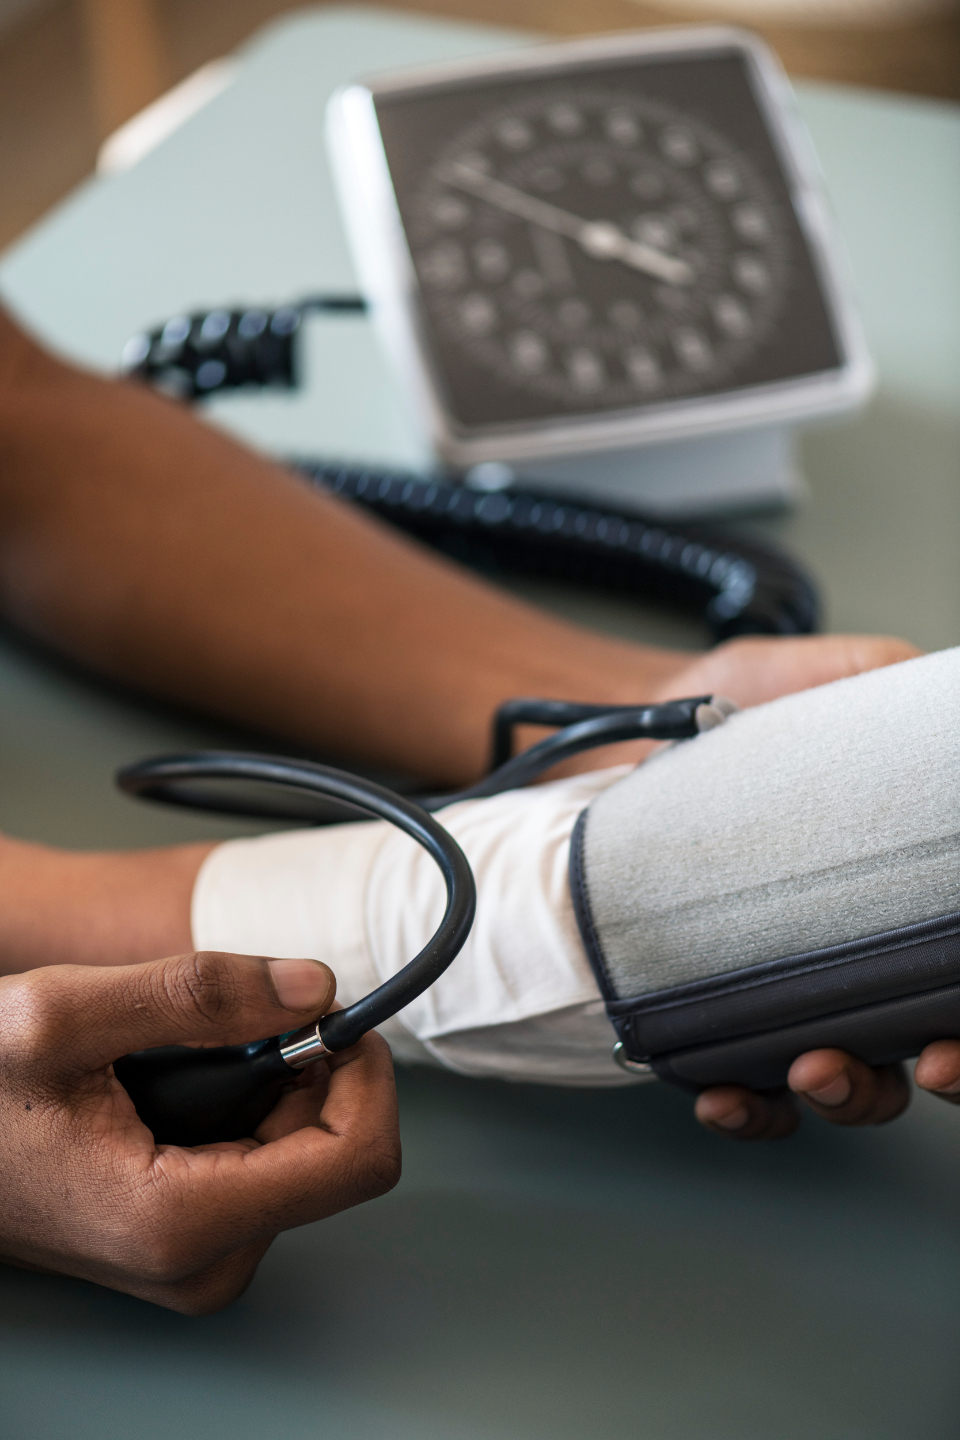 blood pressure cardiac care caucasian check clinic closeup diagnosis english equipment examination hand healthcare healthy high blood hospital hypertension hypotension ill illness measure medical medical care medication